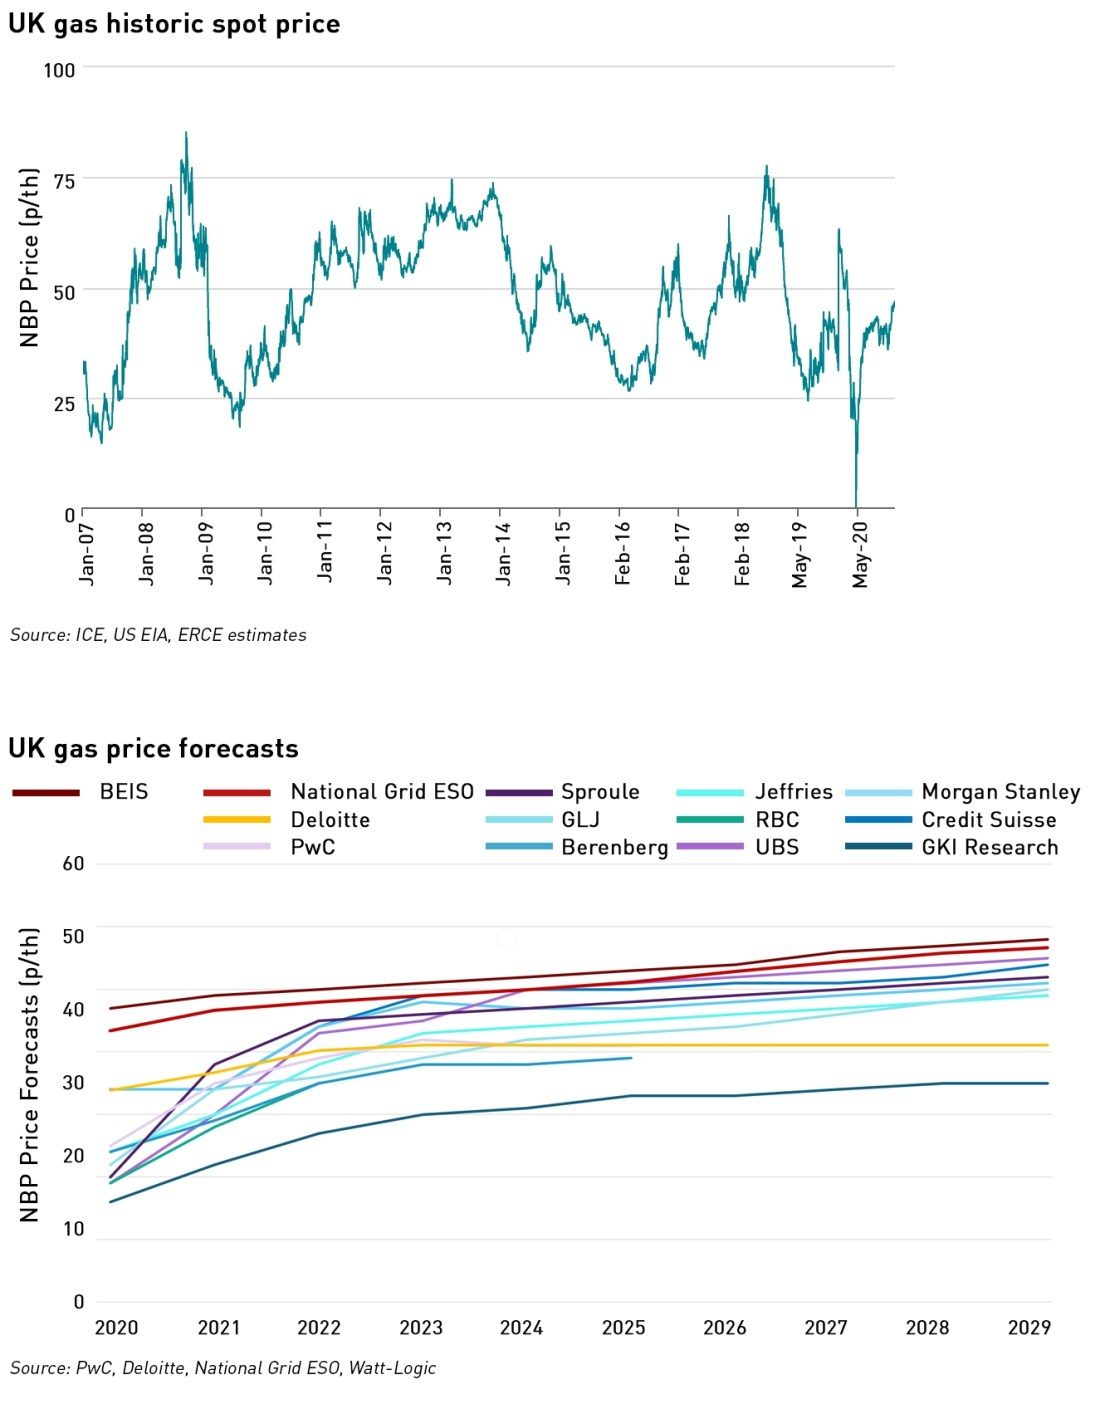 UK gas prices